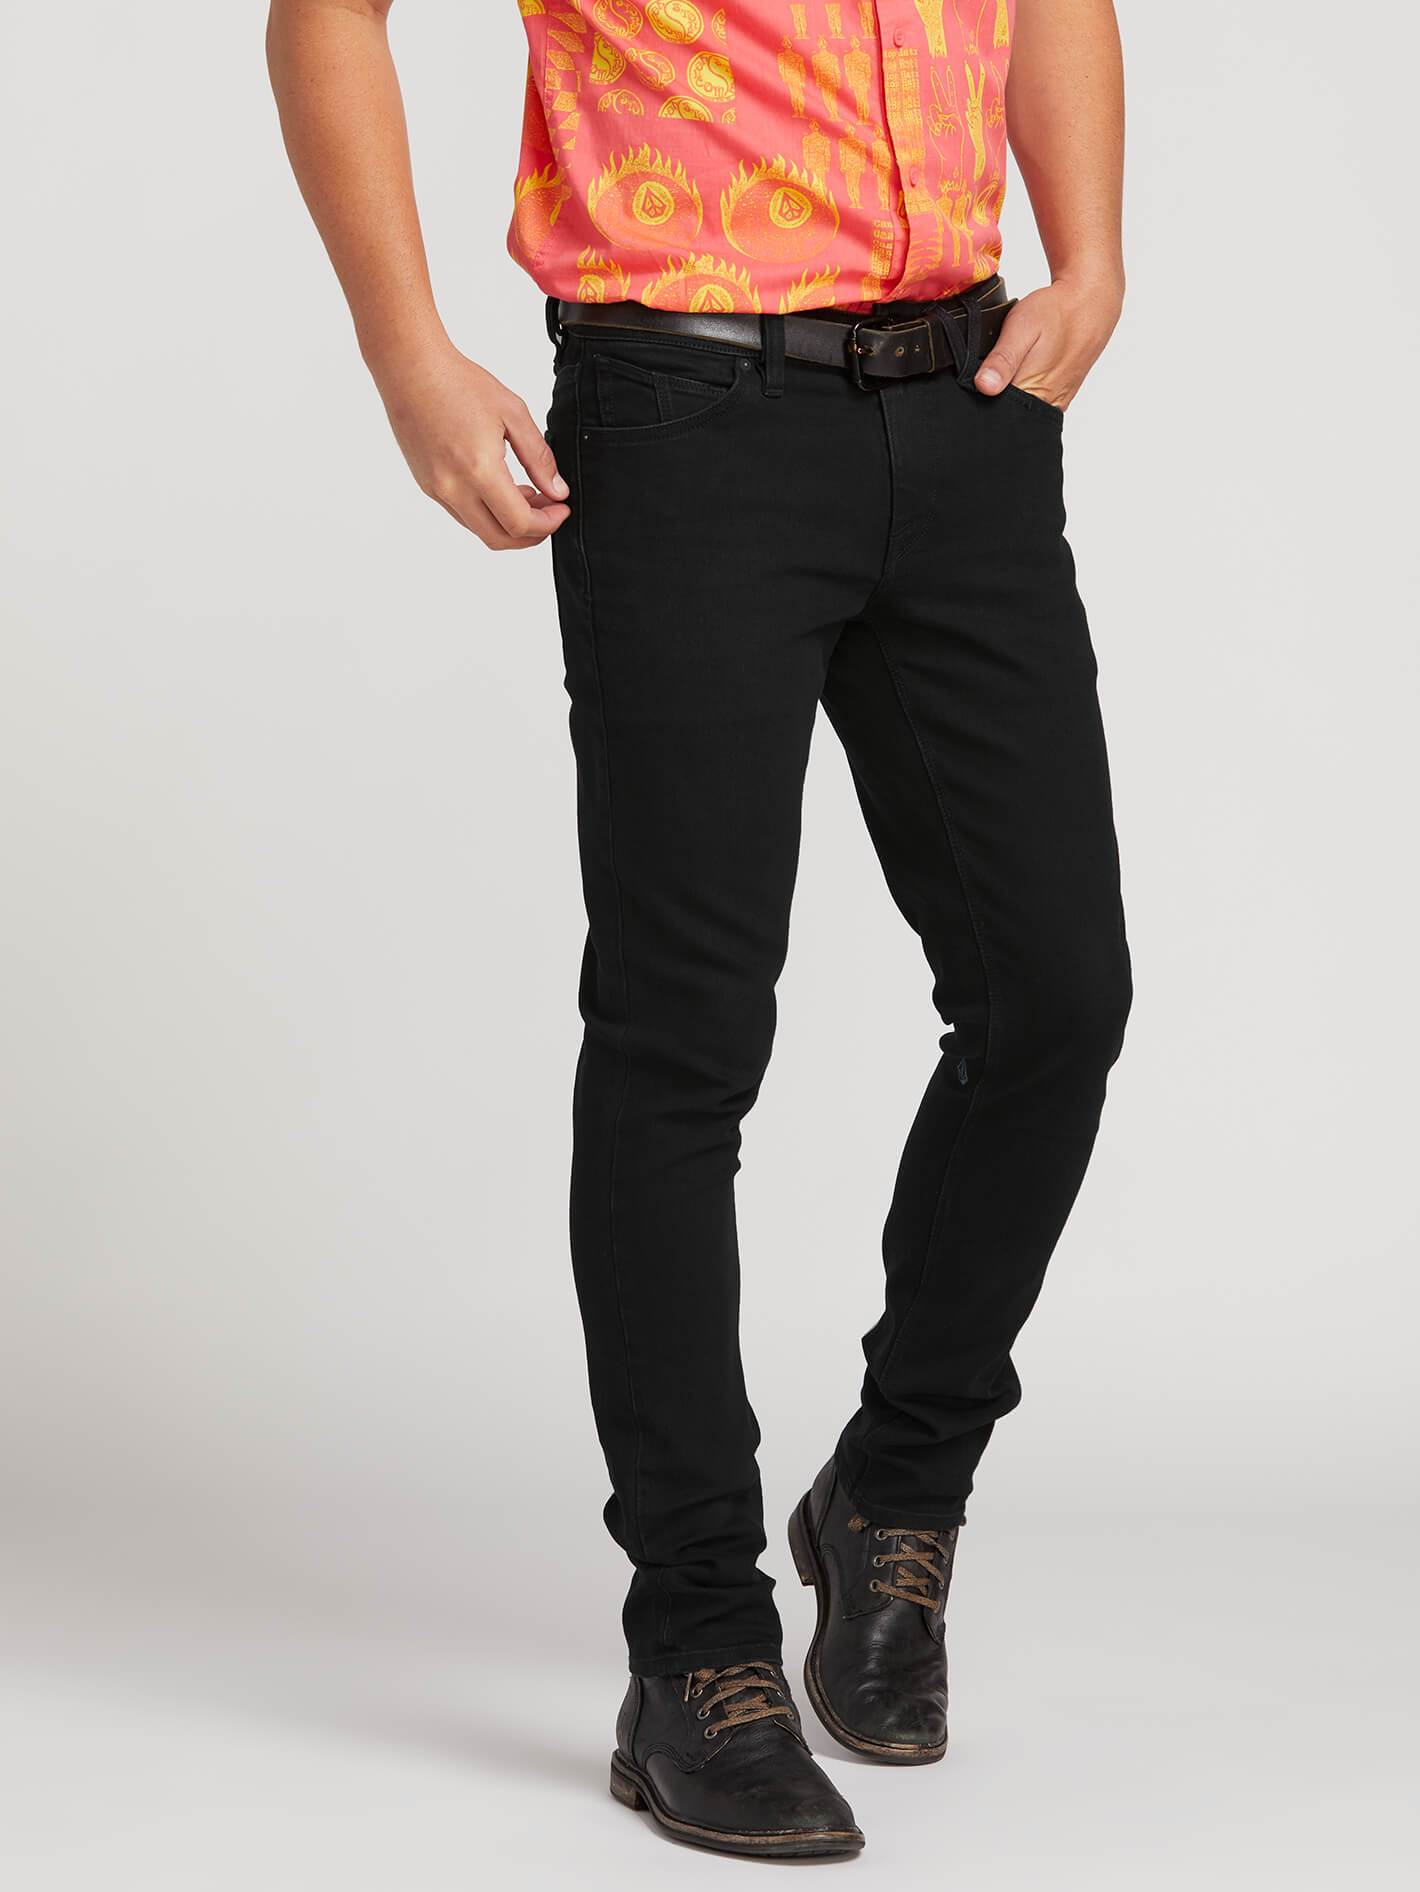 2X4 Skinny Fit Jeans - Black Out - BLACKOUT / 33 / 32